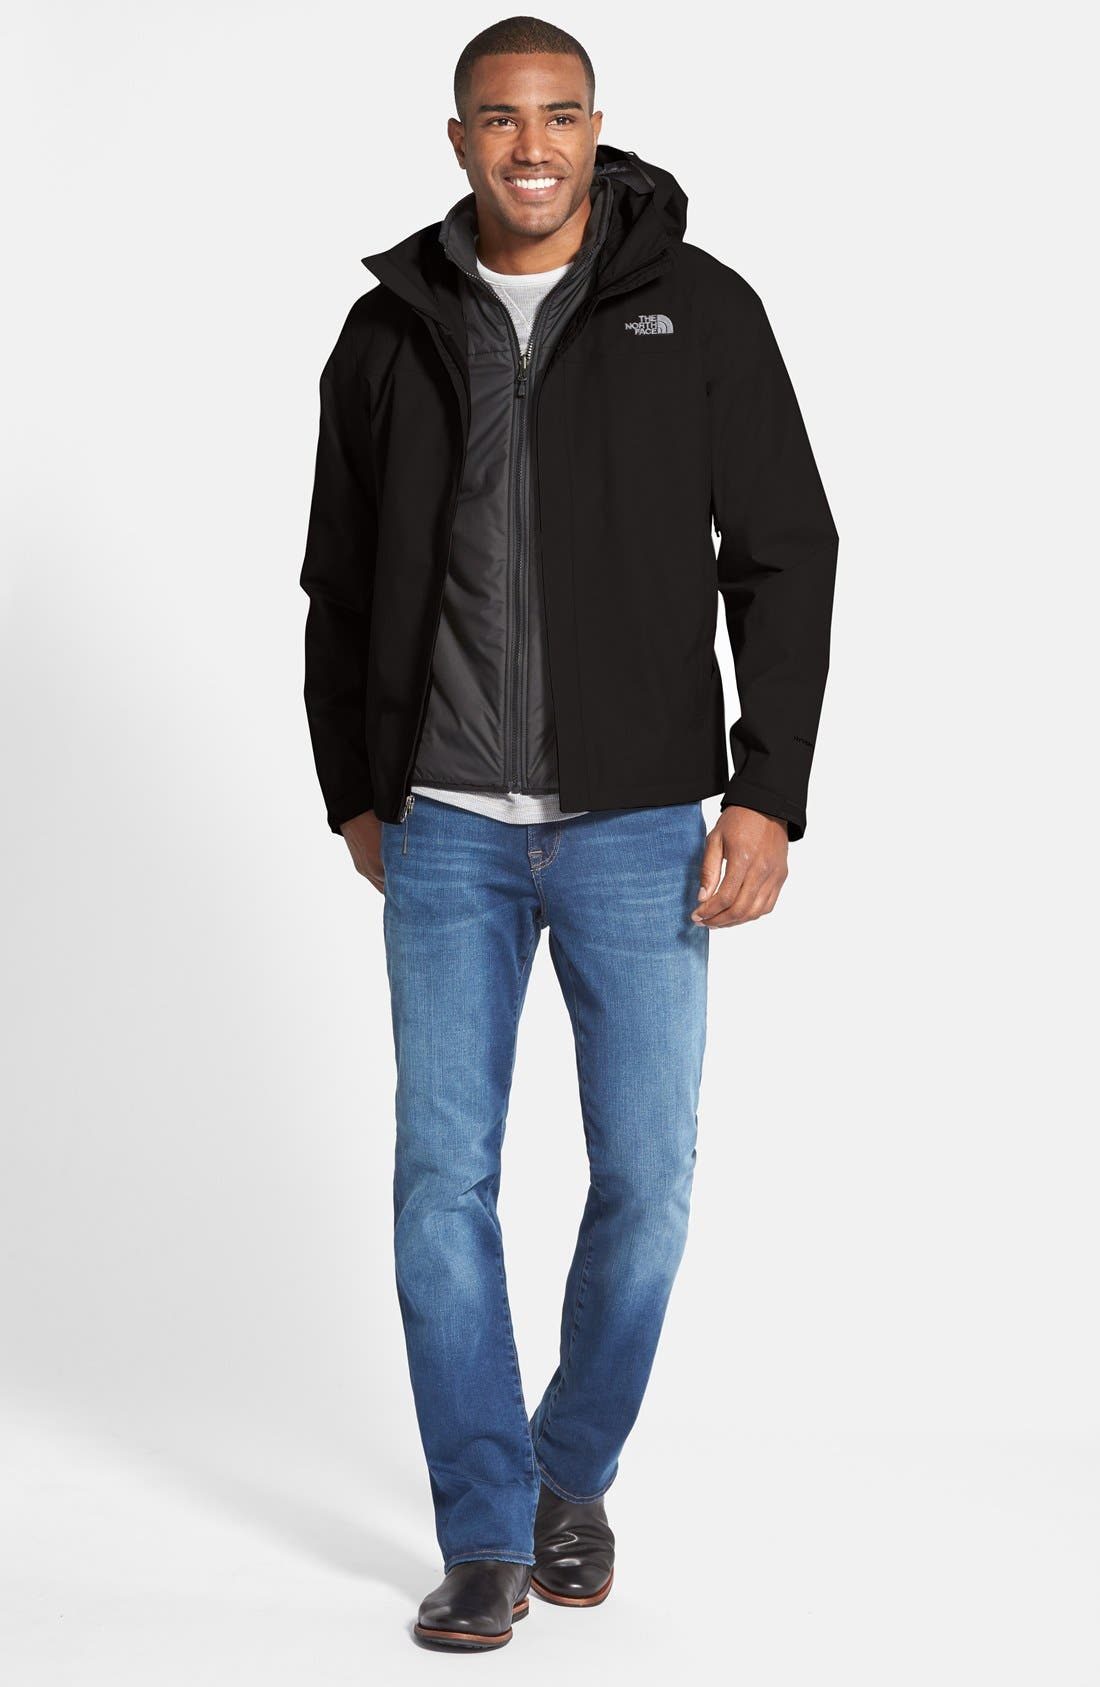 THE NORTH FACE,                             Venture Waterproof Jacket,                             Alternate thumbnail 5, color,                             001